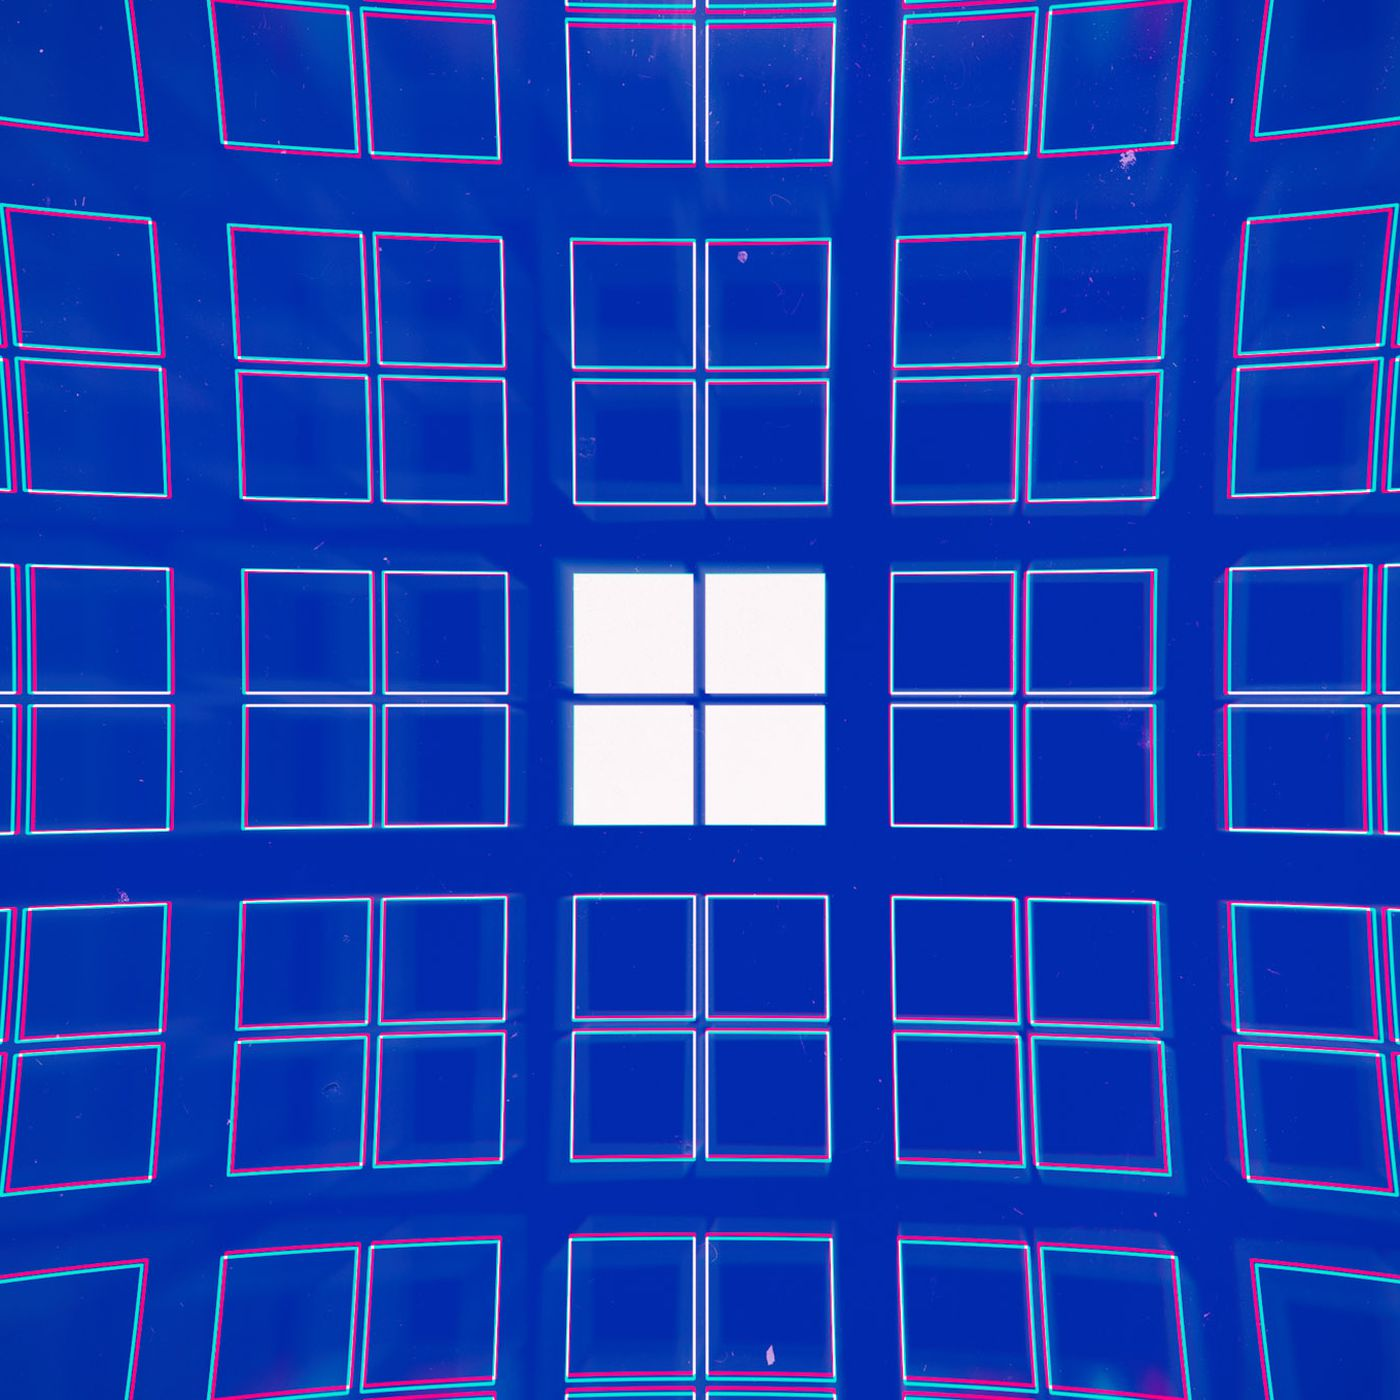 Microsoft: 1 million machines still vulnerable to Windows security